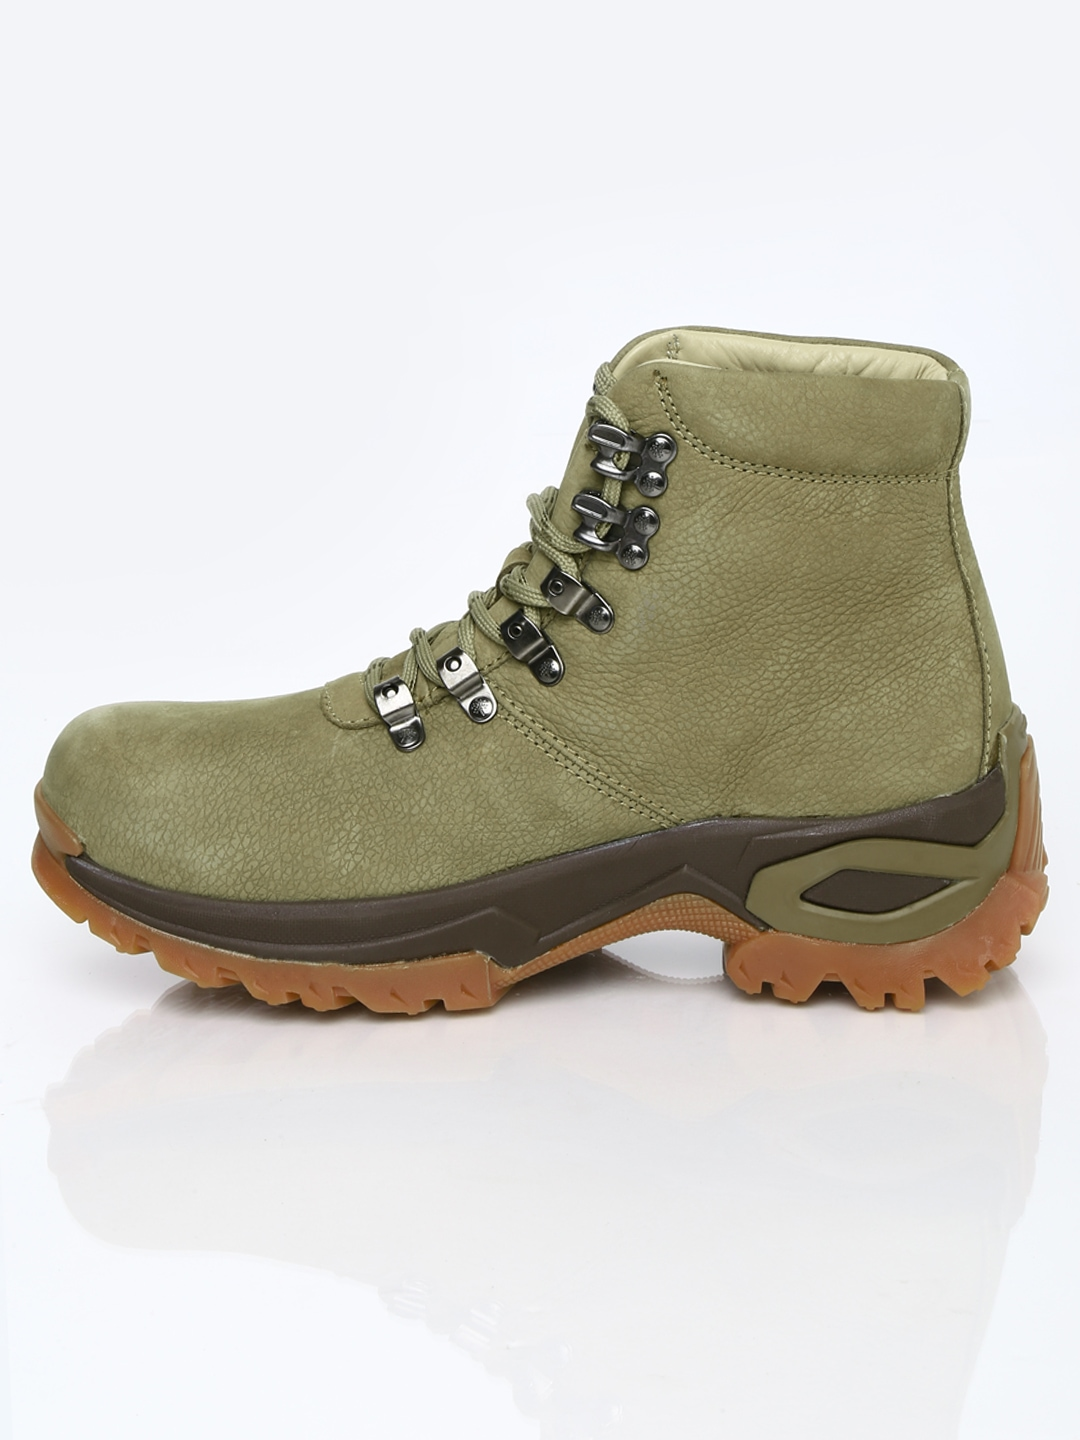 View Product Details More Casual Shoes by Woodland More ...